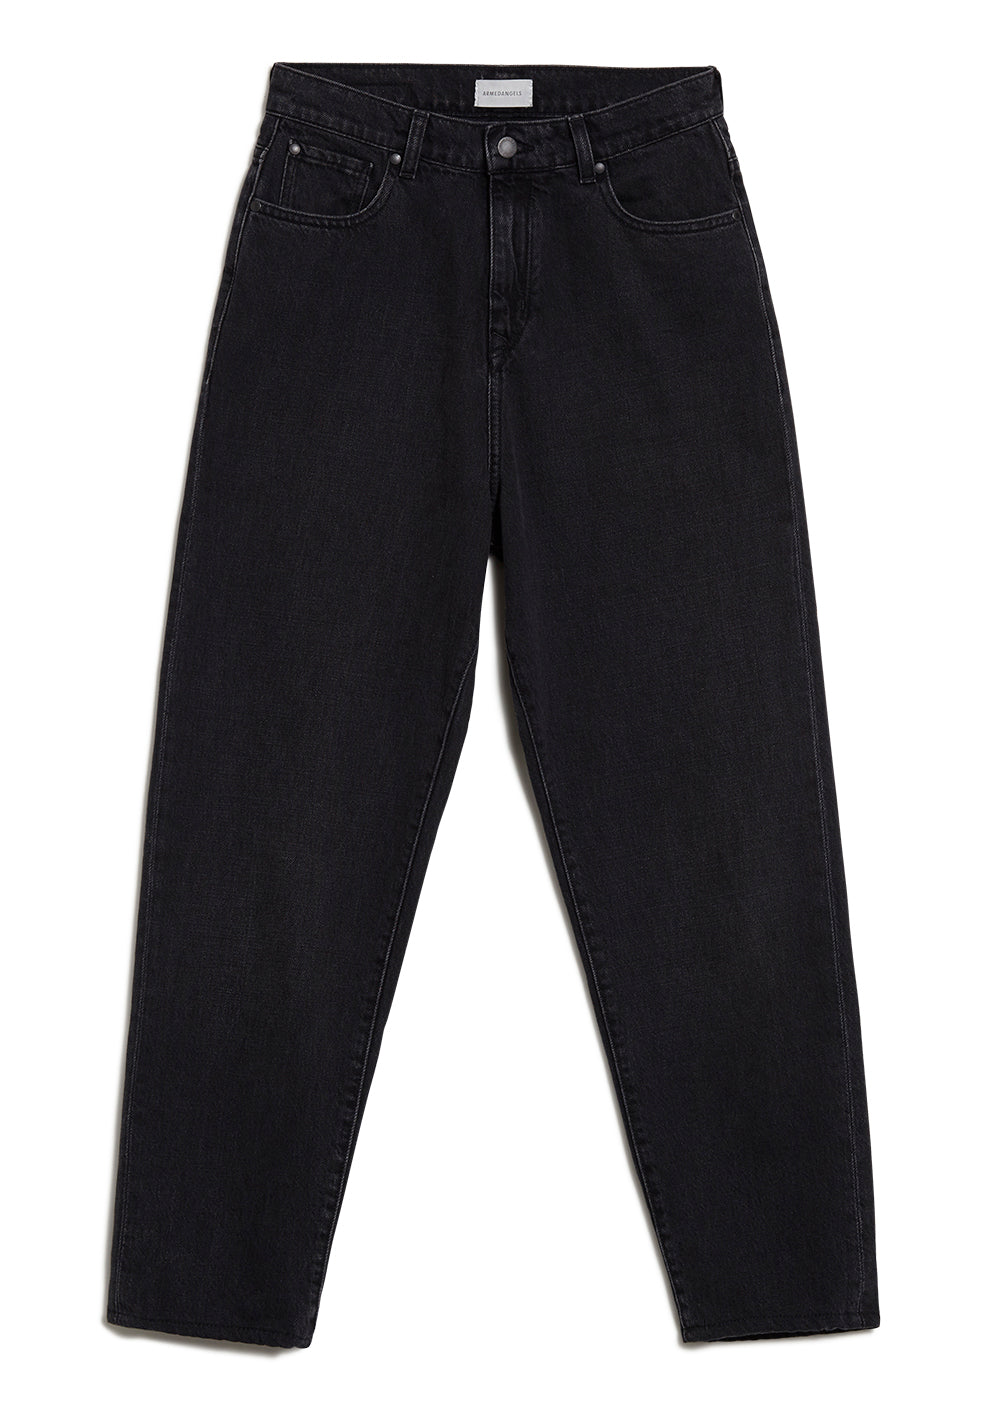 jeans mairaa mom fit washed down black